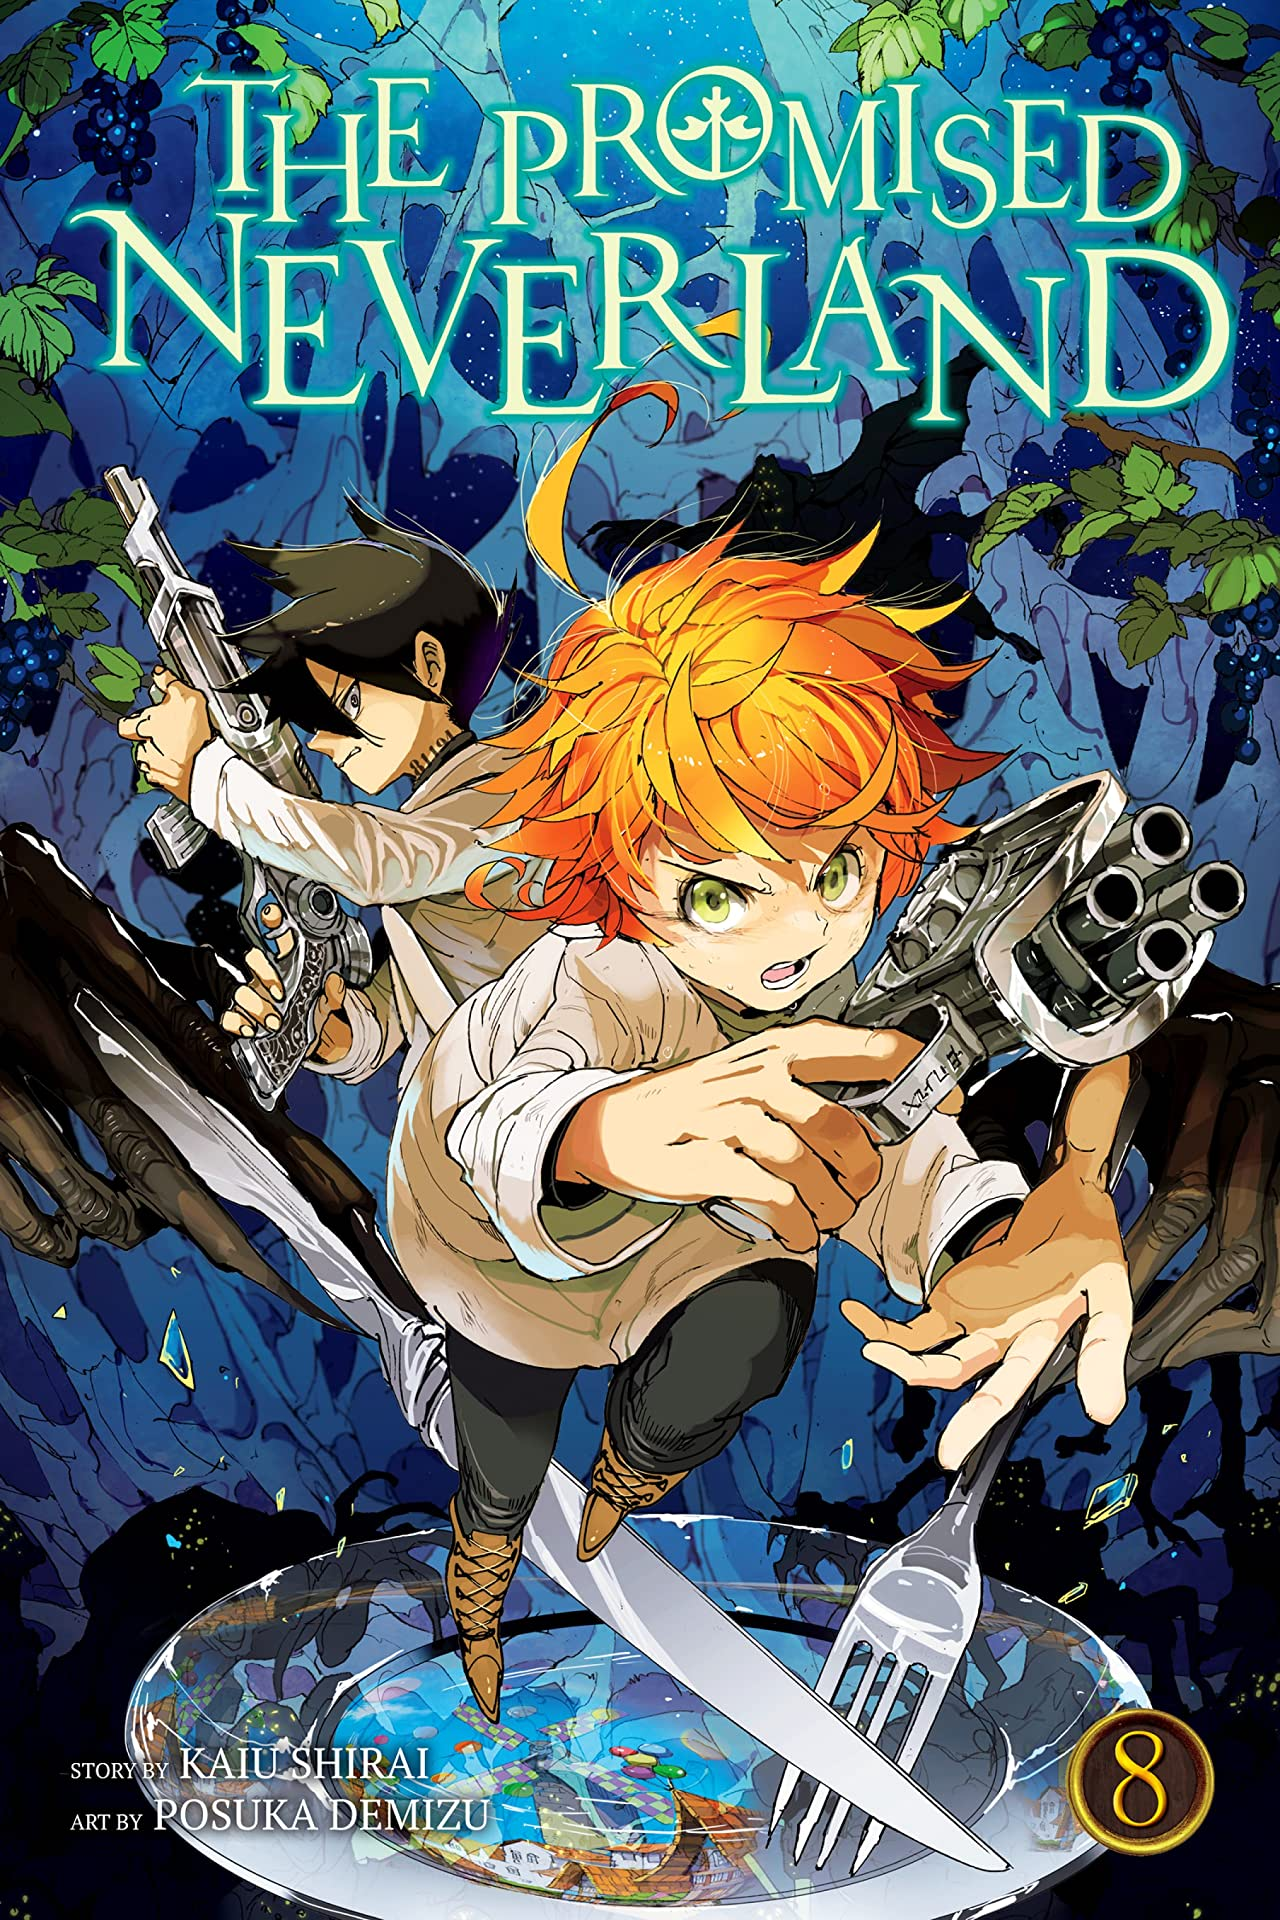 The Promised Neverland Vol. 8